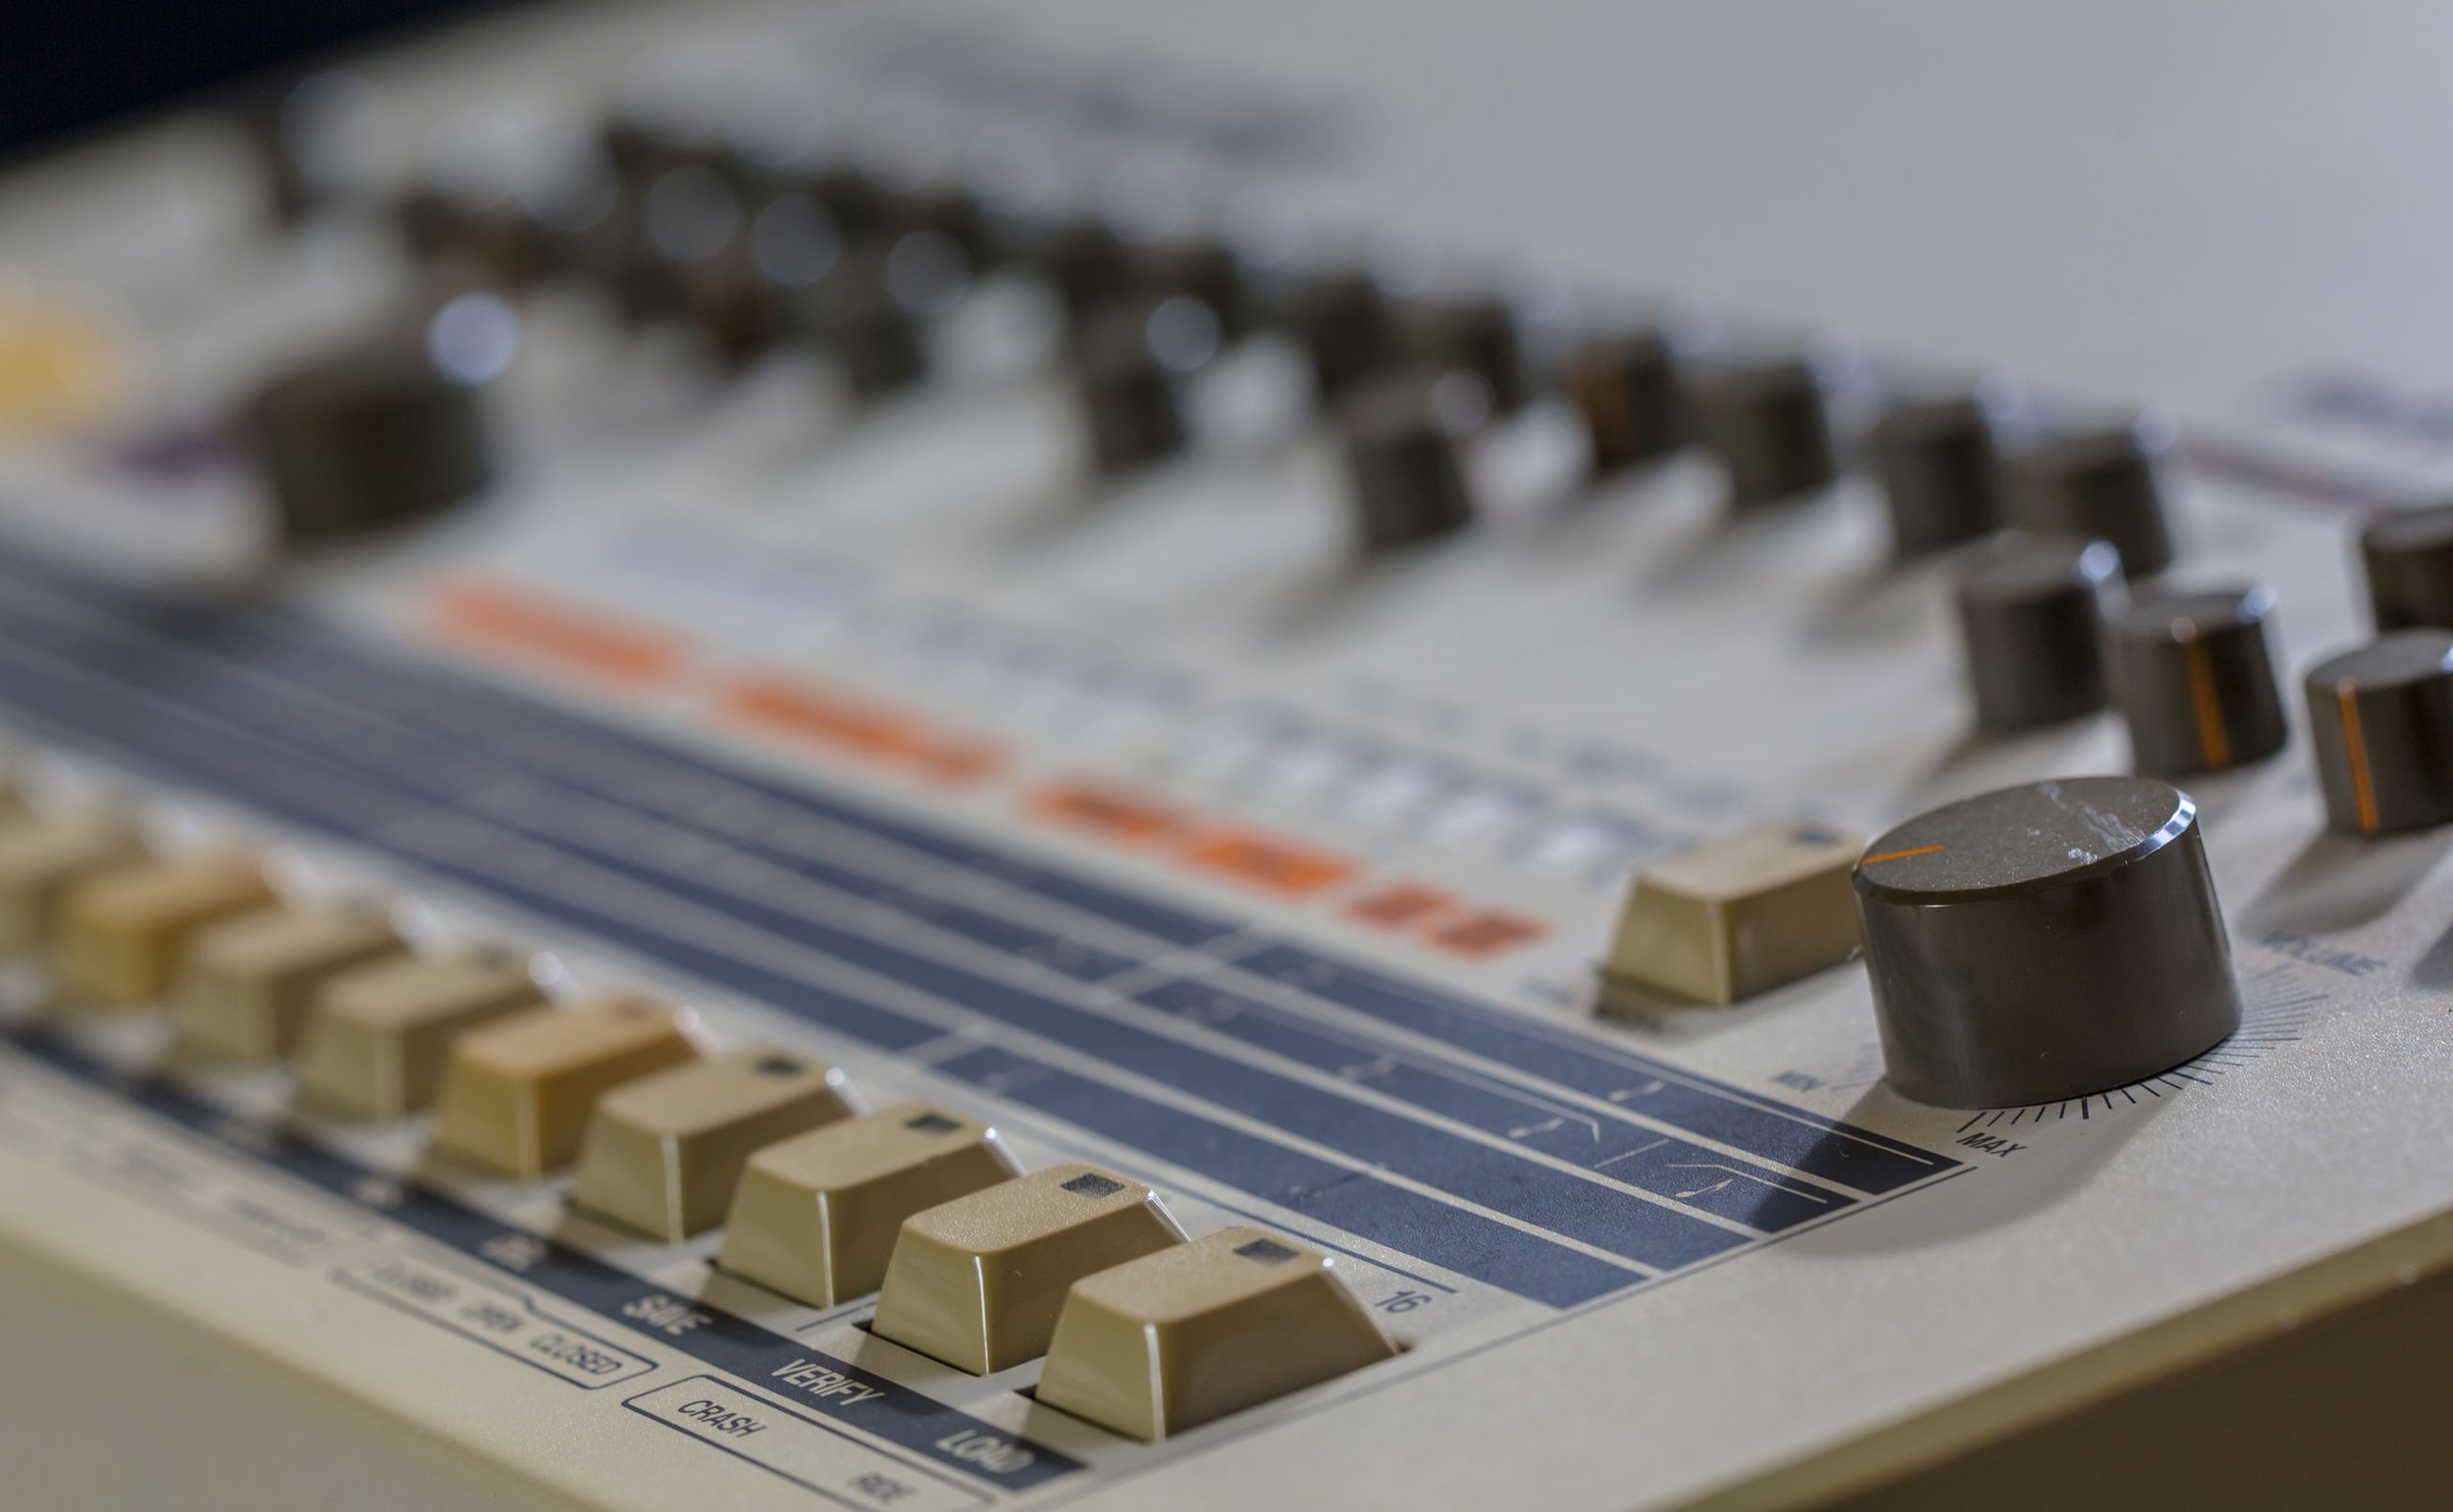 Ikutaro Kakehashi (Feb. 1930 - April 2017) is regarded as a pioneer for inventing synthesizers and drum machines, like the Roland 909 above,that are still used today and are sought after not only as music production tools but also as objets d'art.